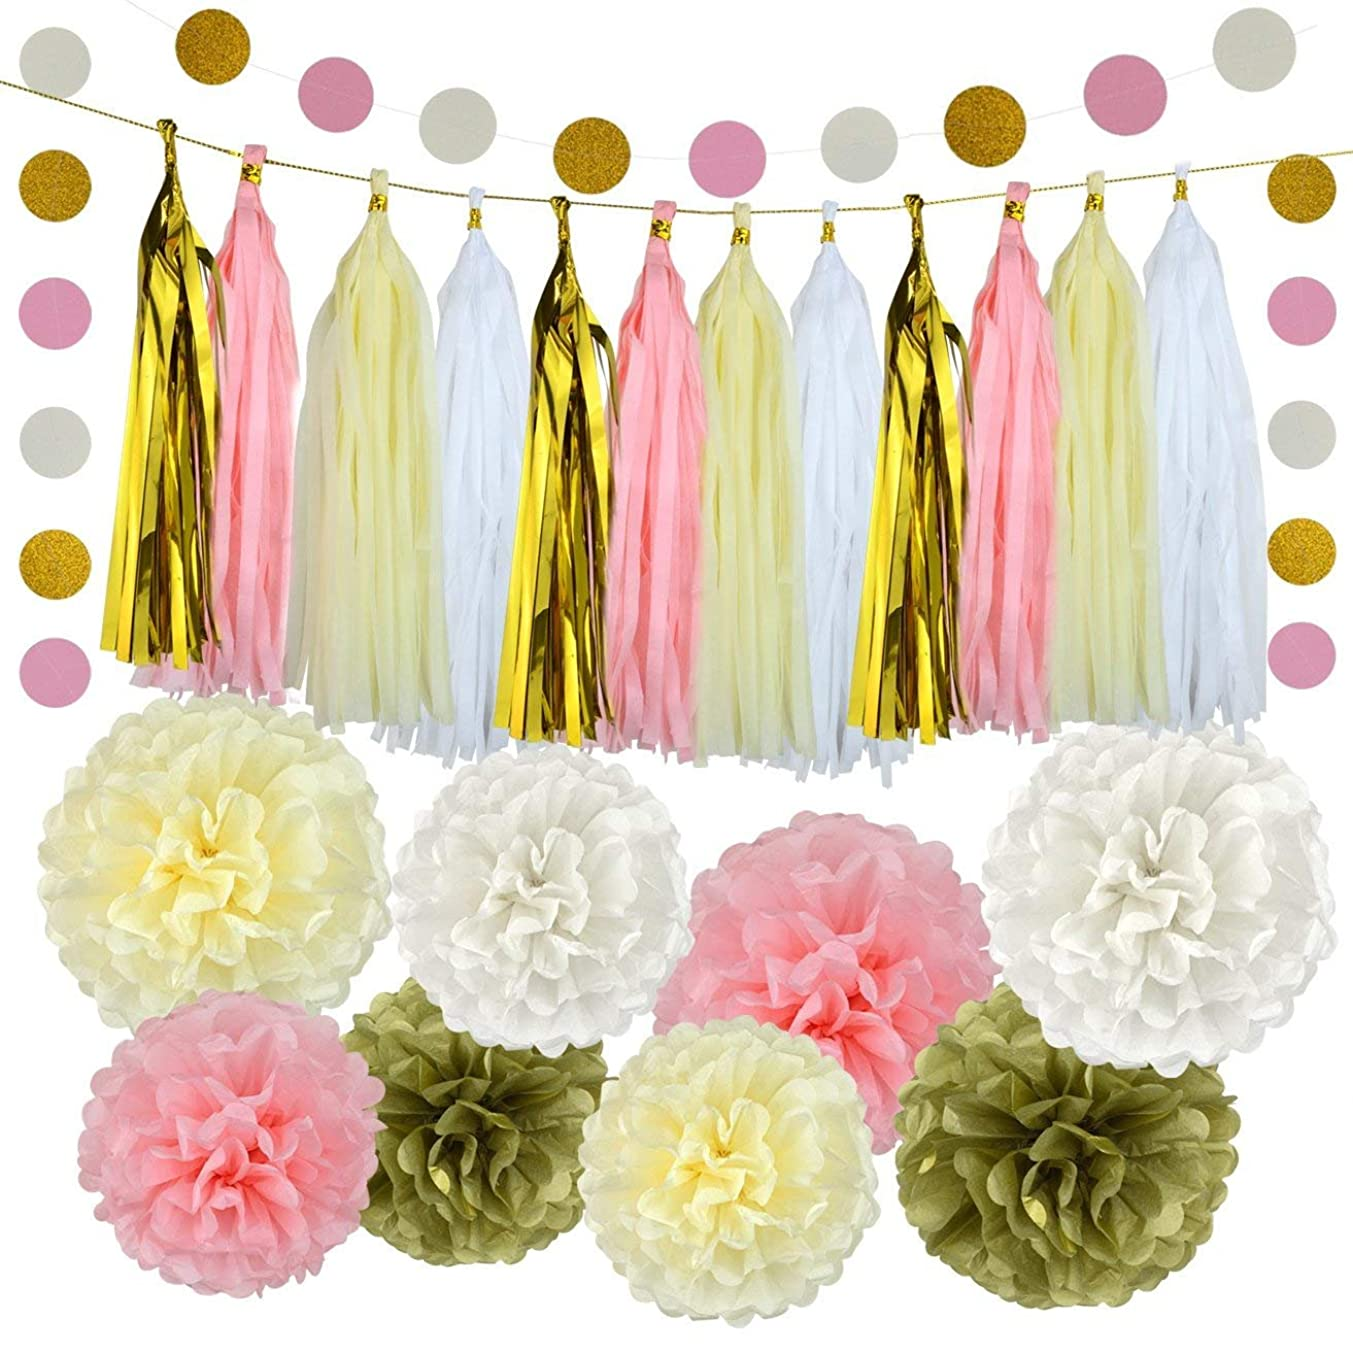 Pistha 30 PCS Bachelorette Party Decorations Party Decoration Paper 8 PCS Tissue Paper Pom Pom 20 PCS Tissue Tassel 2 PCS Garland Polka Dot Paper with Some Golden Lines